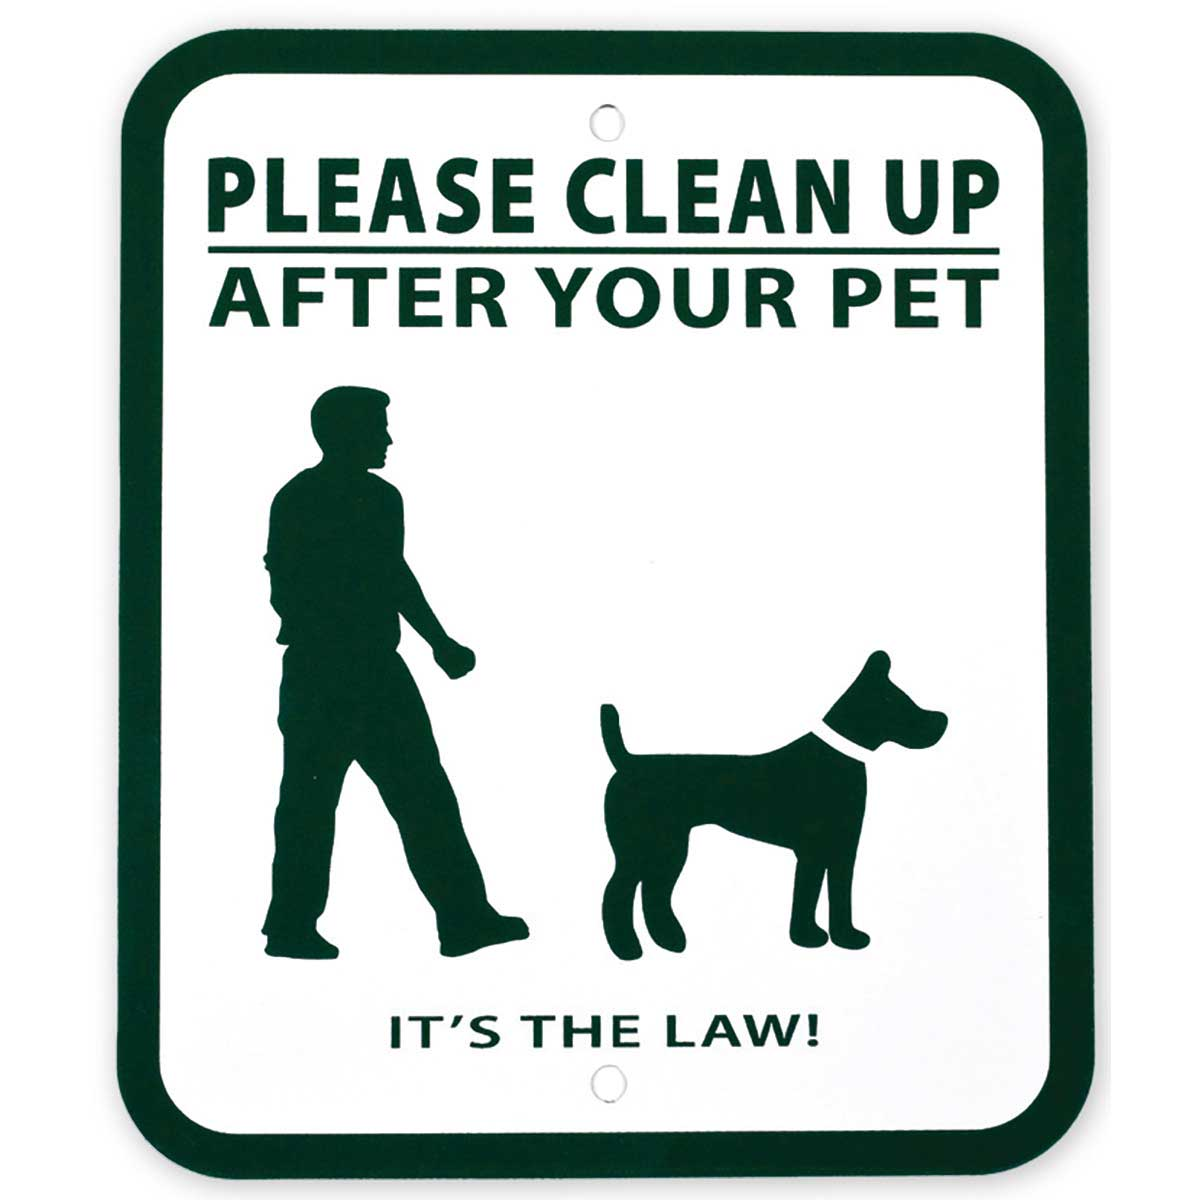 Pet Waste Station Signs Says Please Clean After Your Pet - It's the Law!